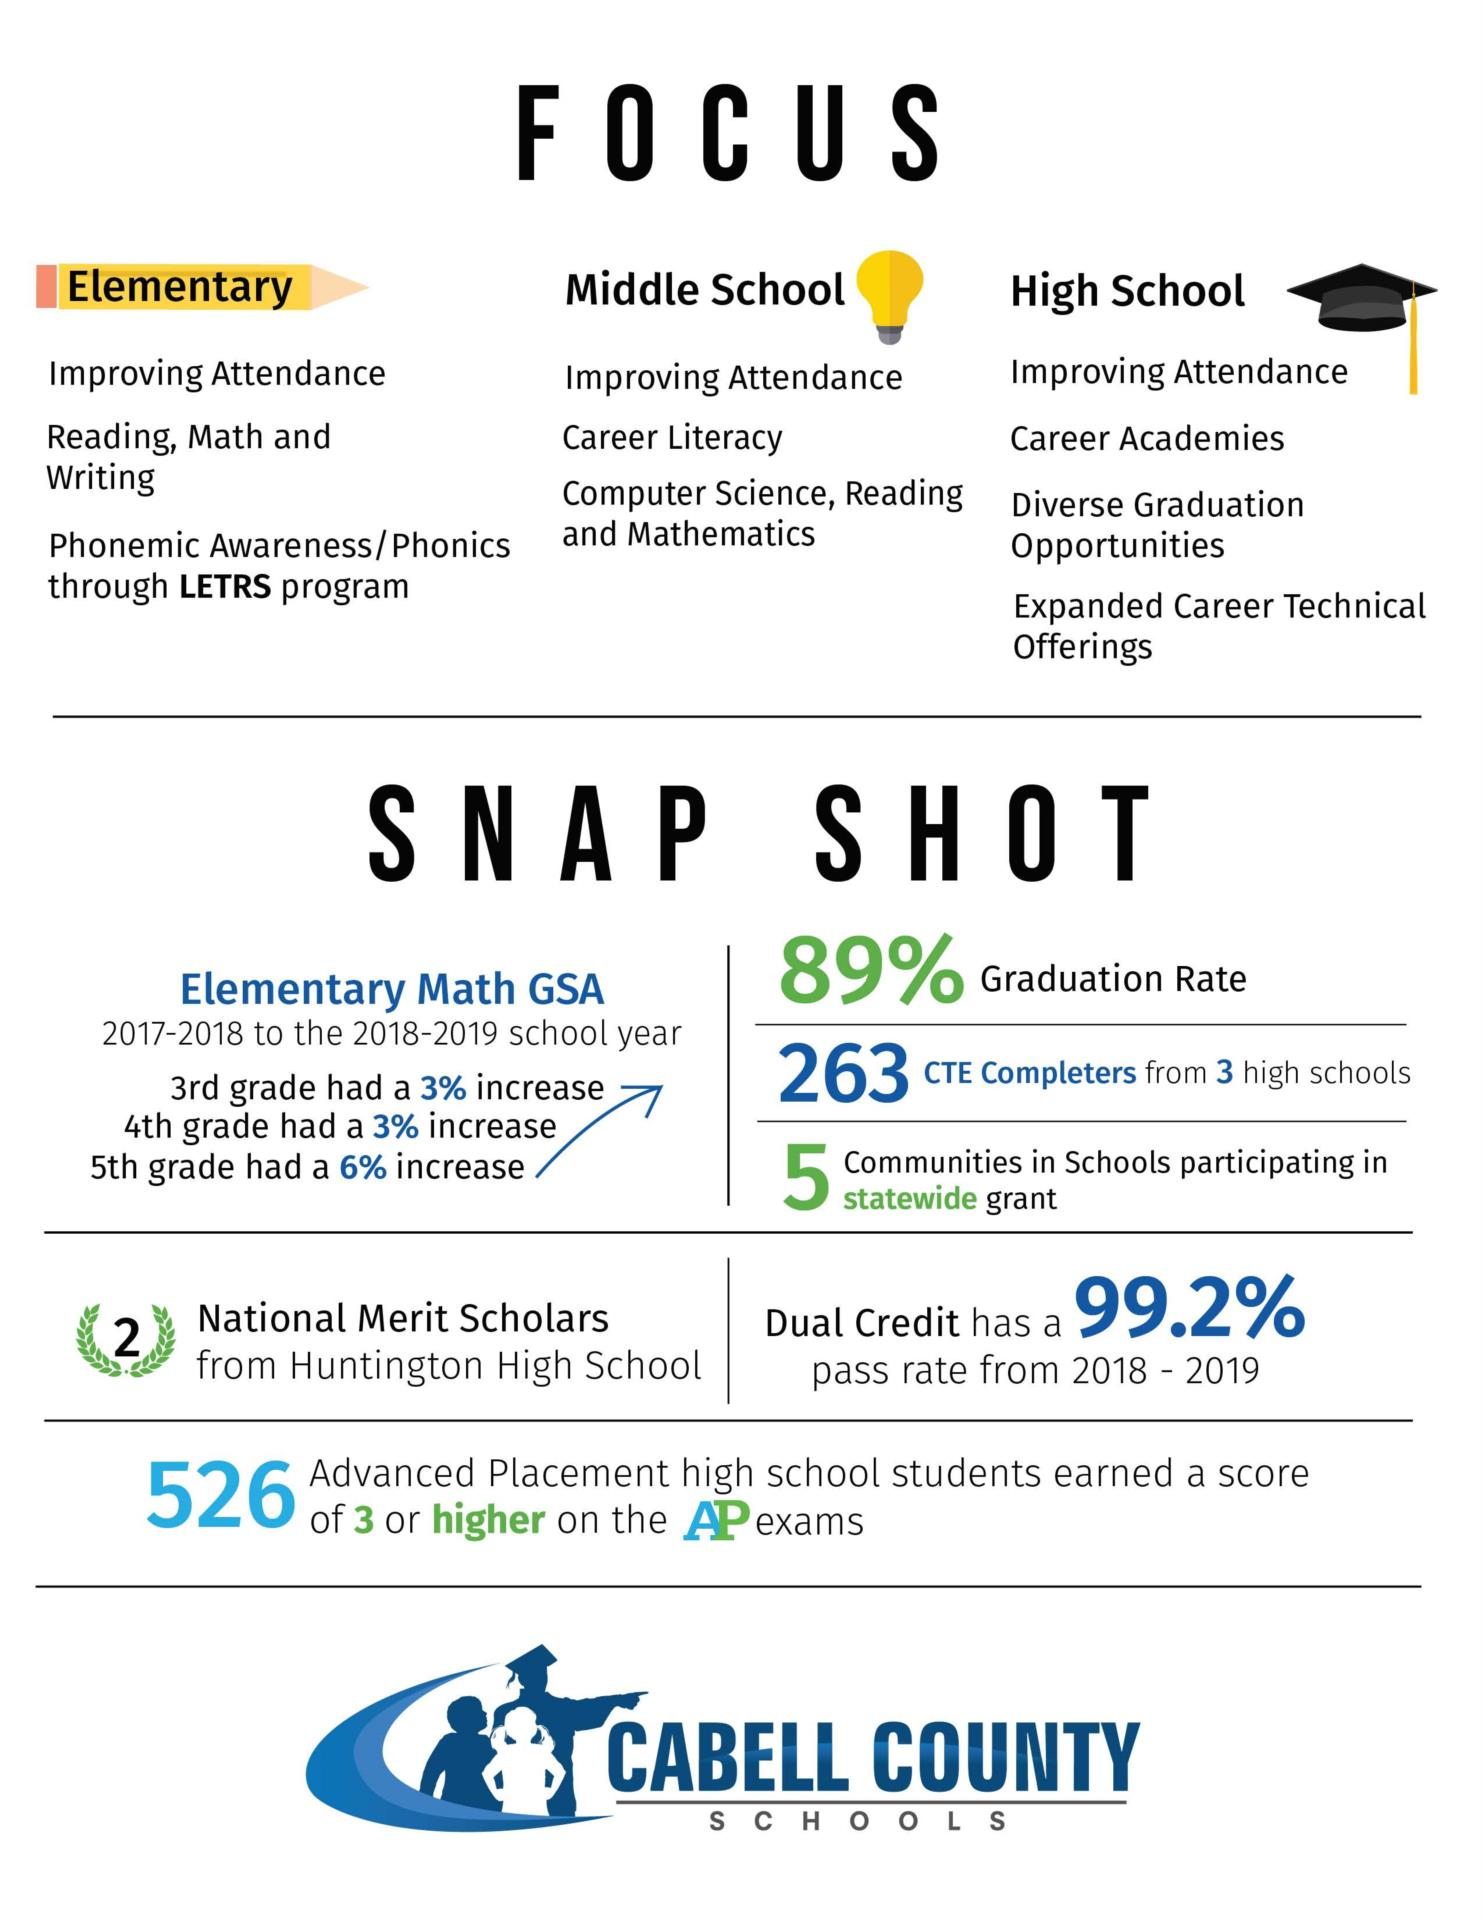 Infogram of Cabell County Schools Image